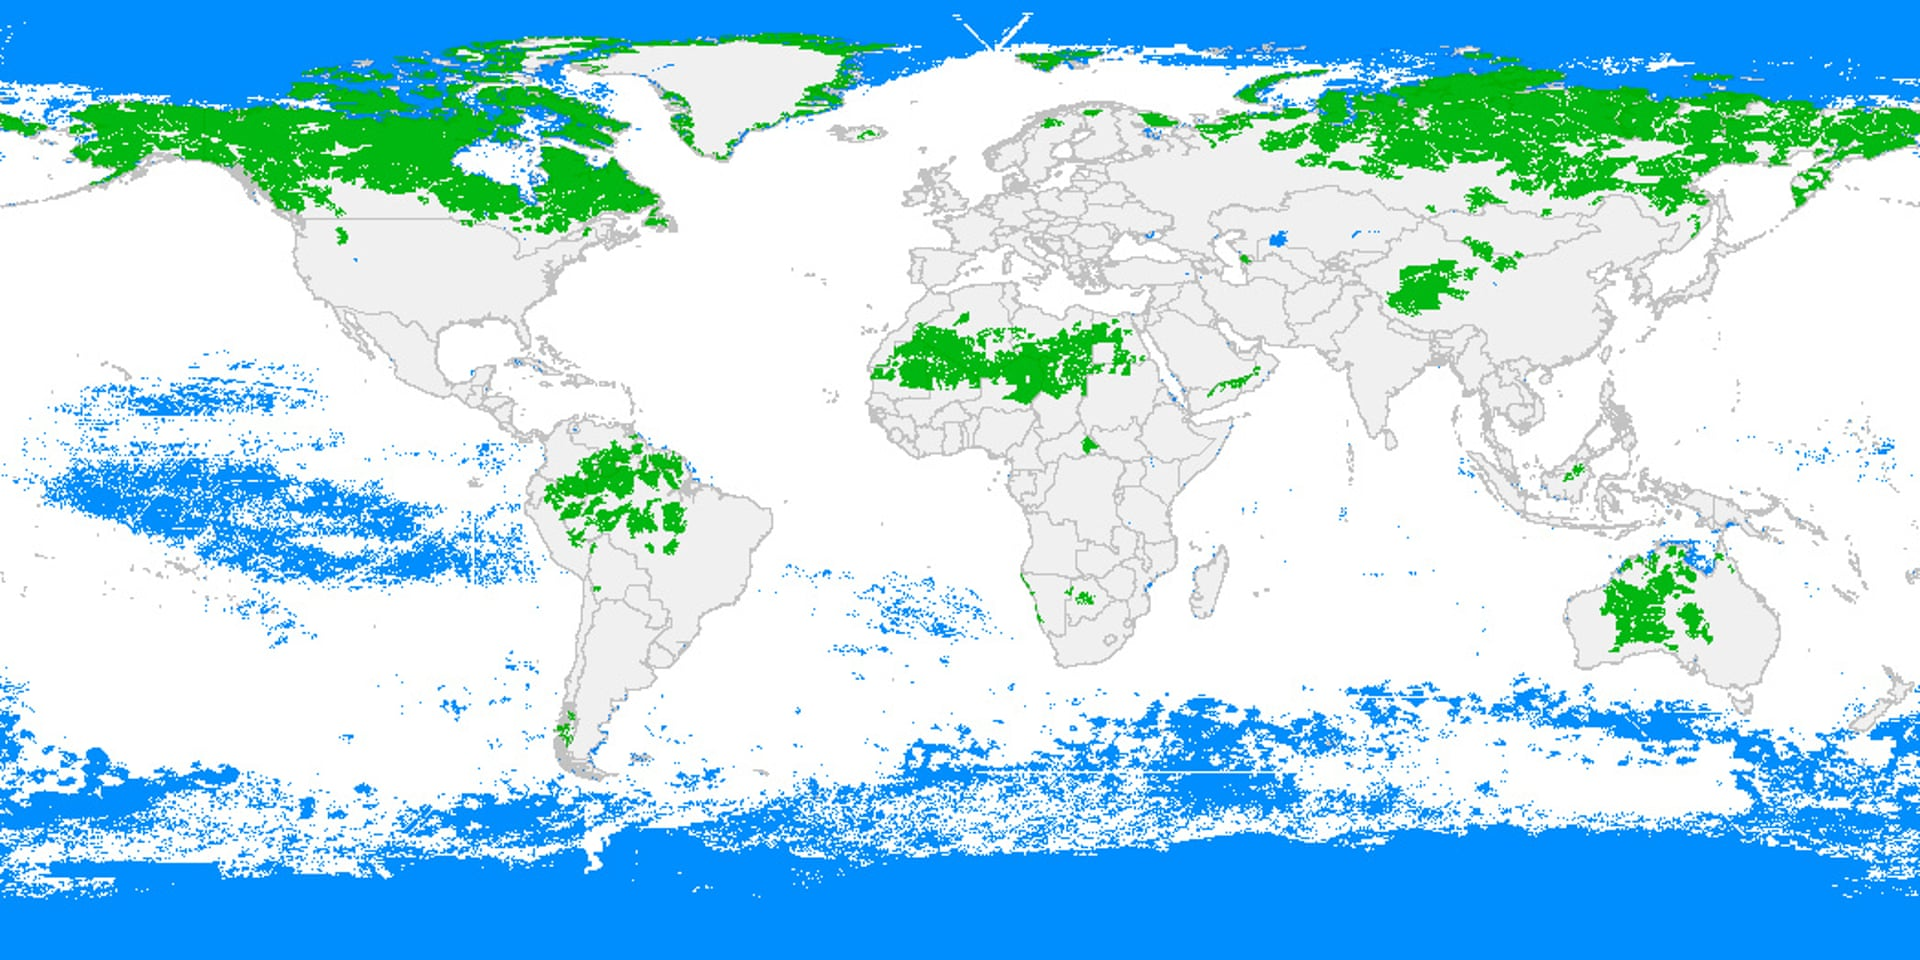 Map of the world's remaining wilderness. Green represents land wilderness, while blue represents ocean wilderness